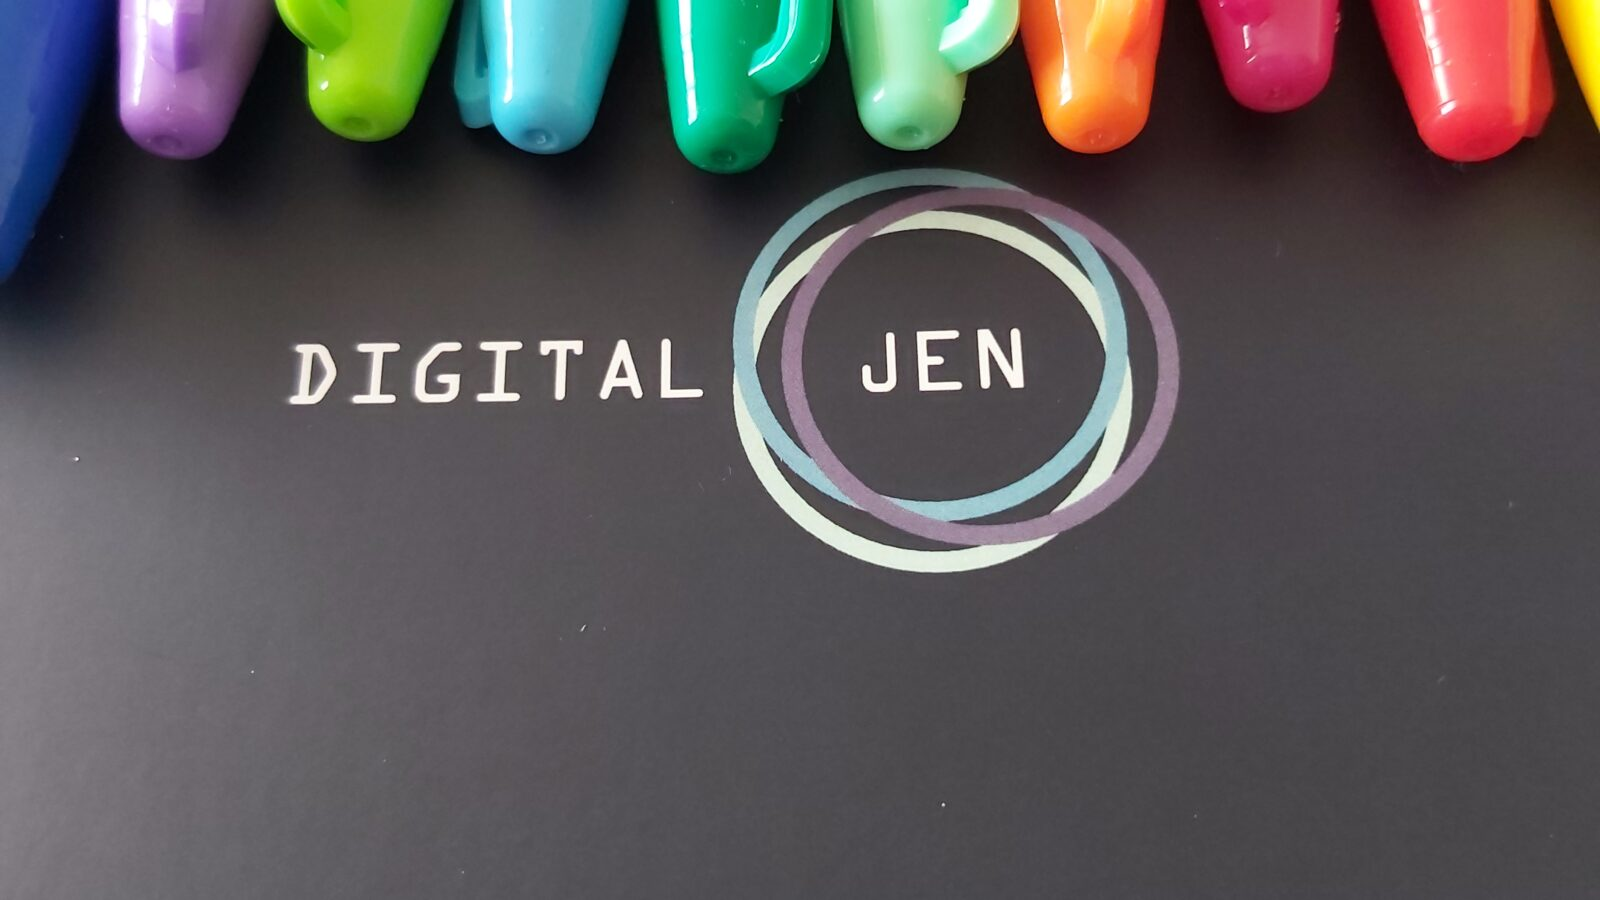 digitaljen, websites, apps, wordpress, st albans, jenny smith